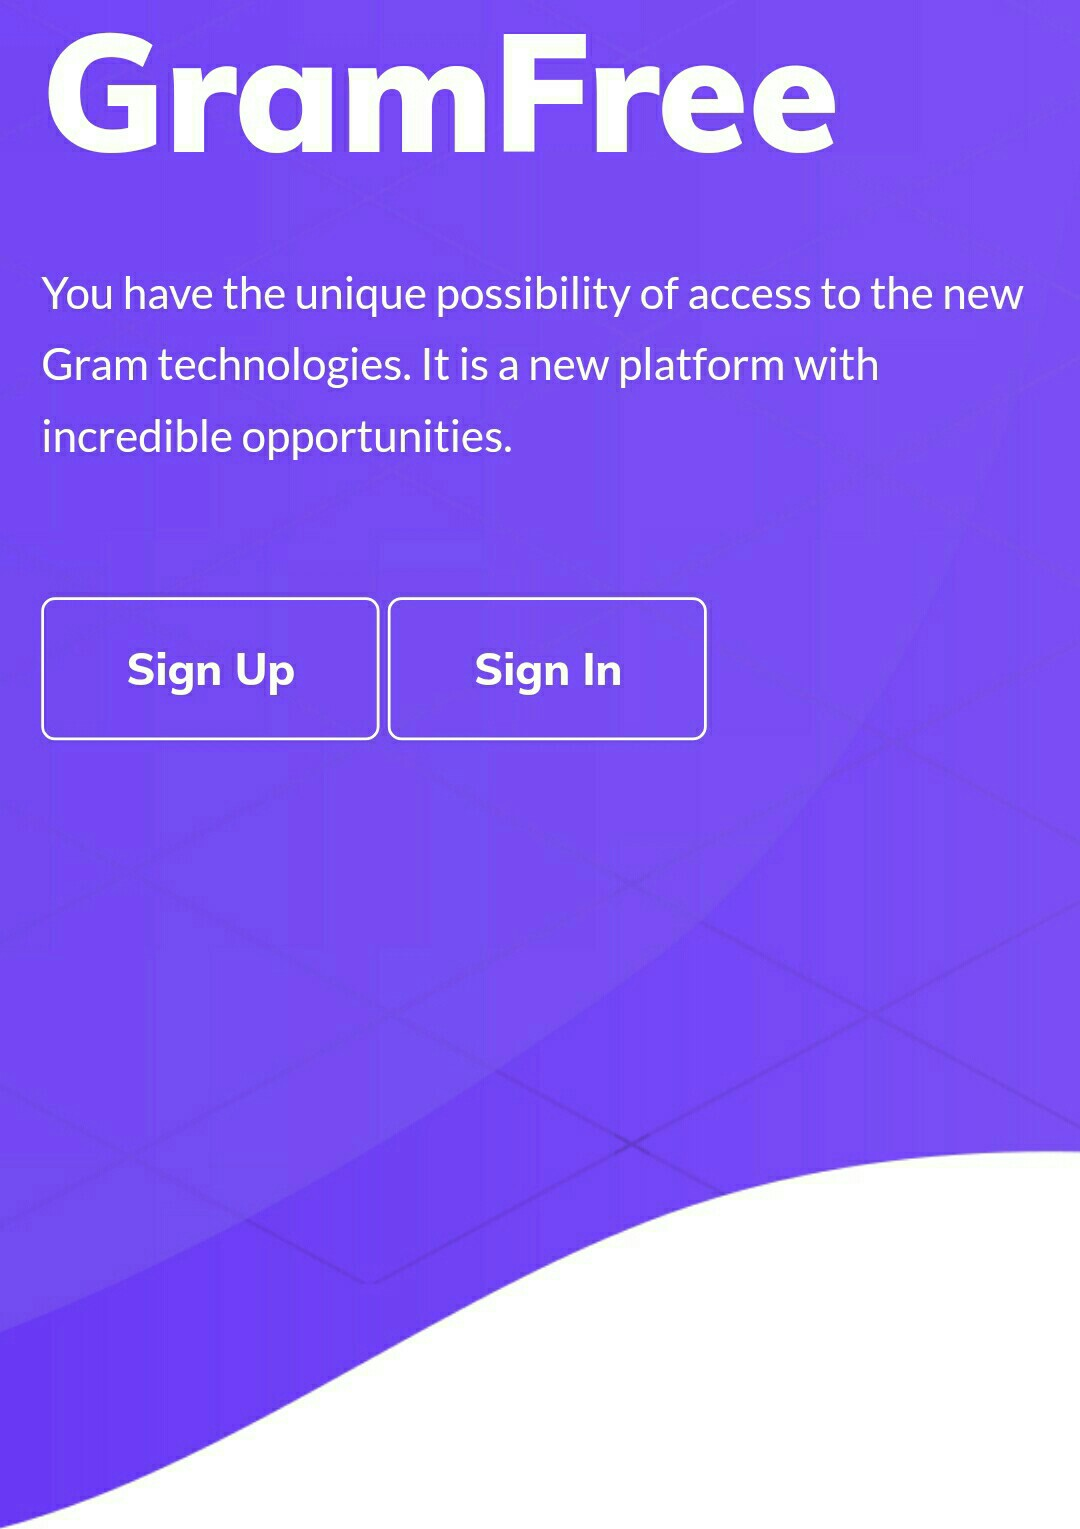 GramFree.World Reviews - All You Need To Know Before Signing Up For GramFree World